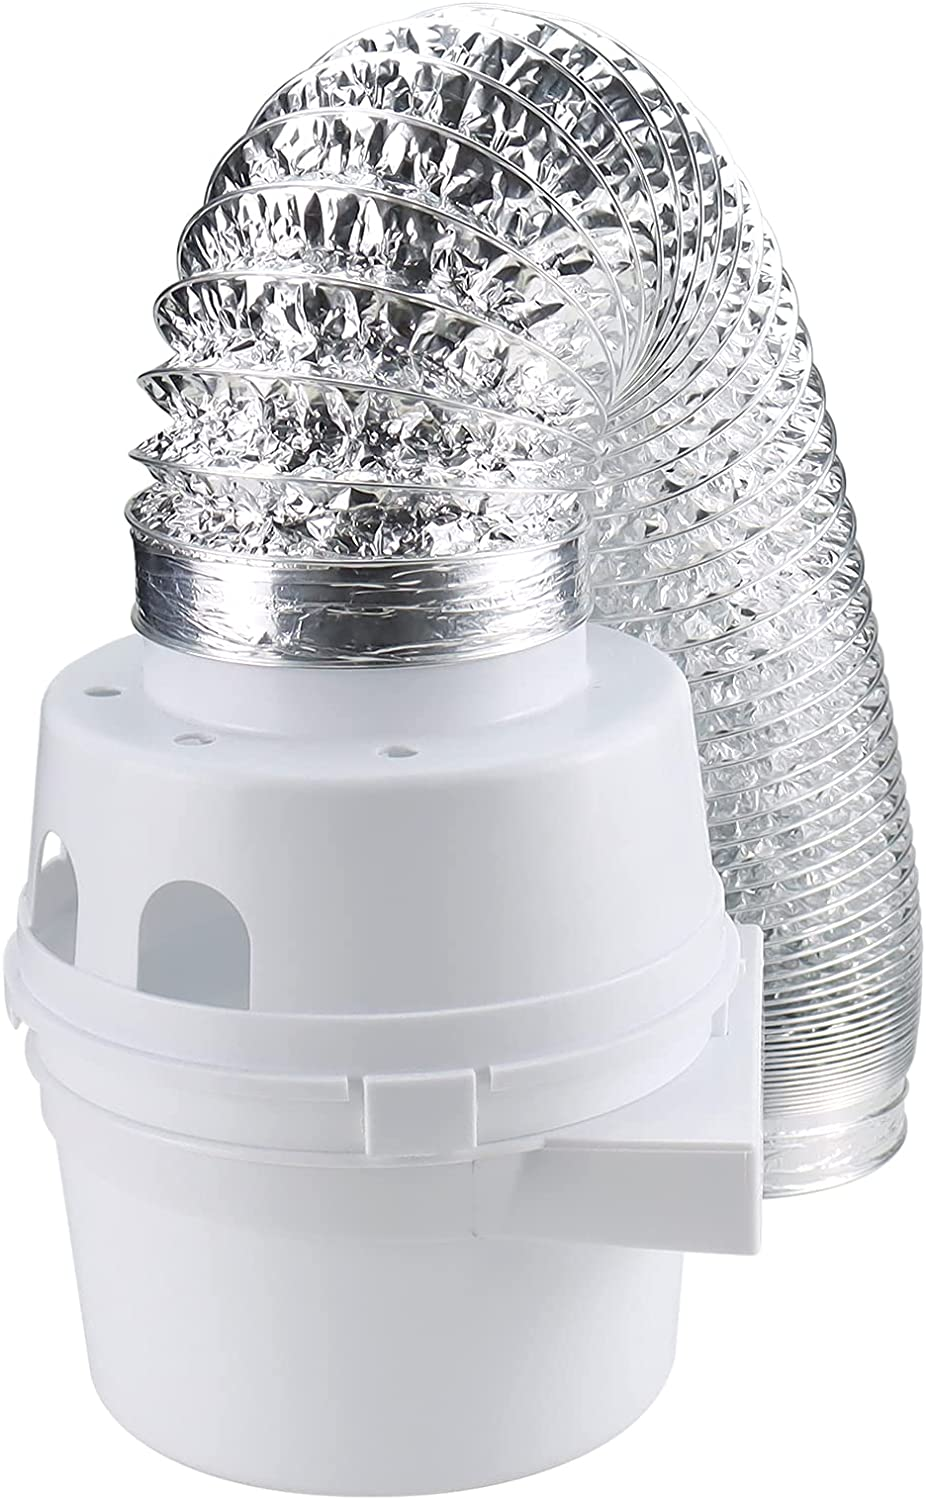 Beaquicy TDIDVKZW Indoor Dryer Vent Kit with 4-Inch by 5-Foot Proflex Duct, 4 Inch